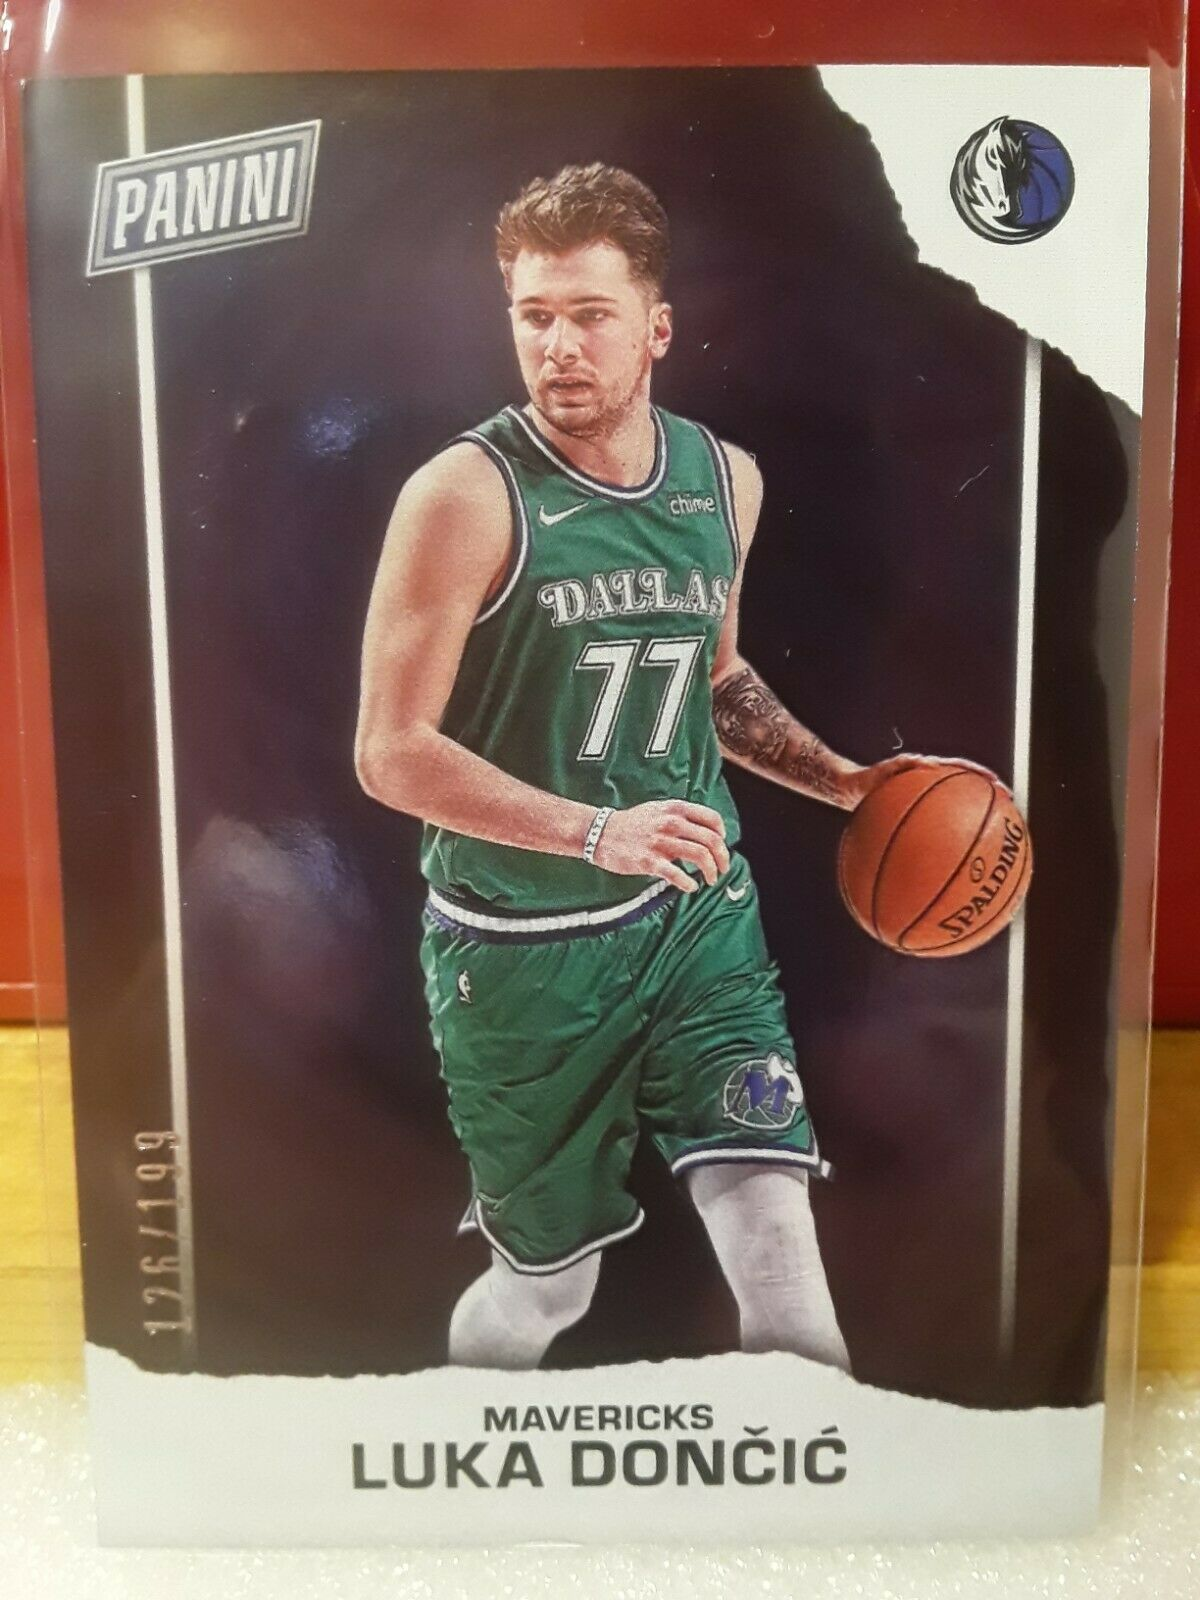 2021 PANINI FATHERS DAY LUKA DONCIC SILVER PARALLEL 126/199 - $29.99